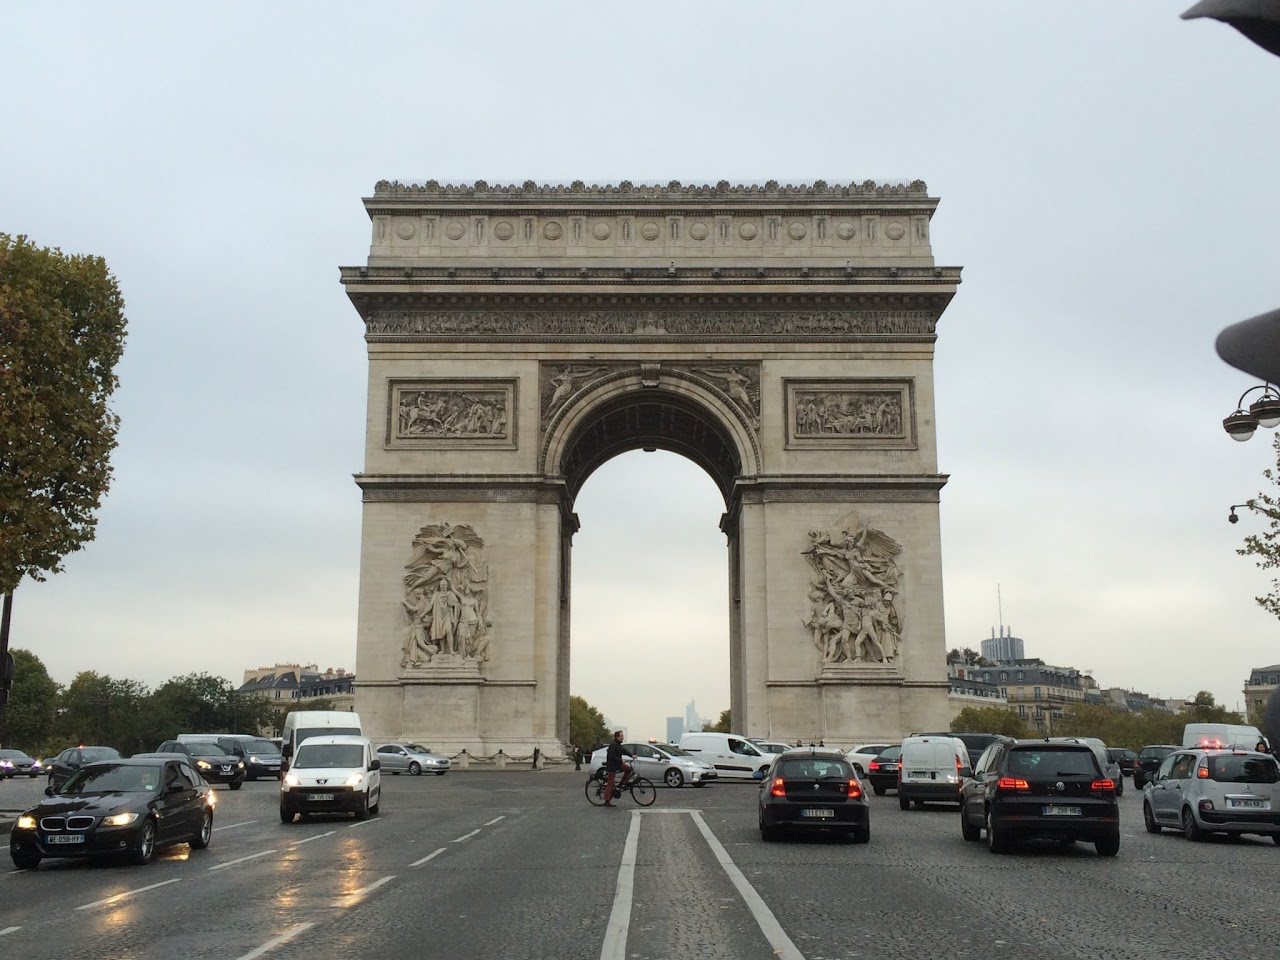 My Photos: France -- Paris -- Arc de Triomphe